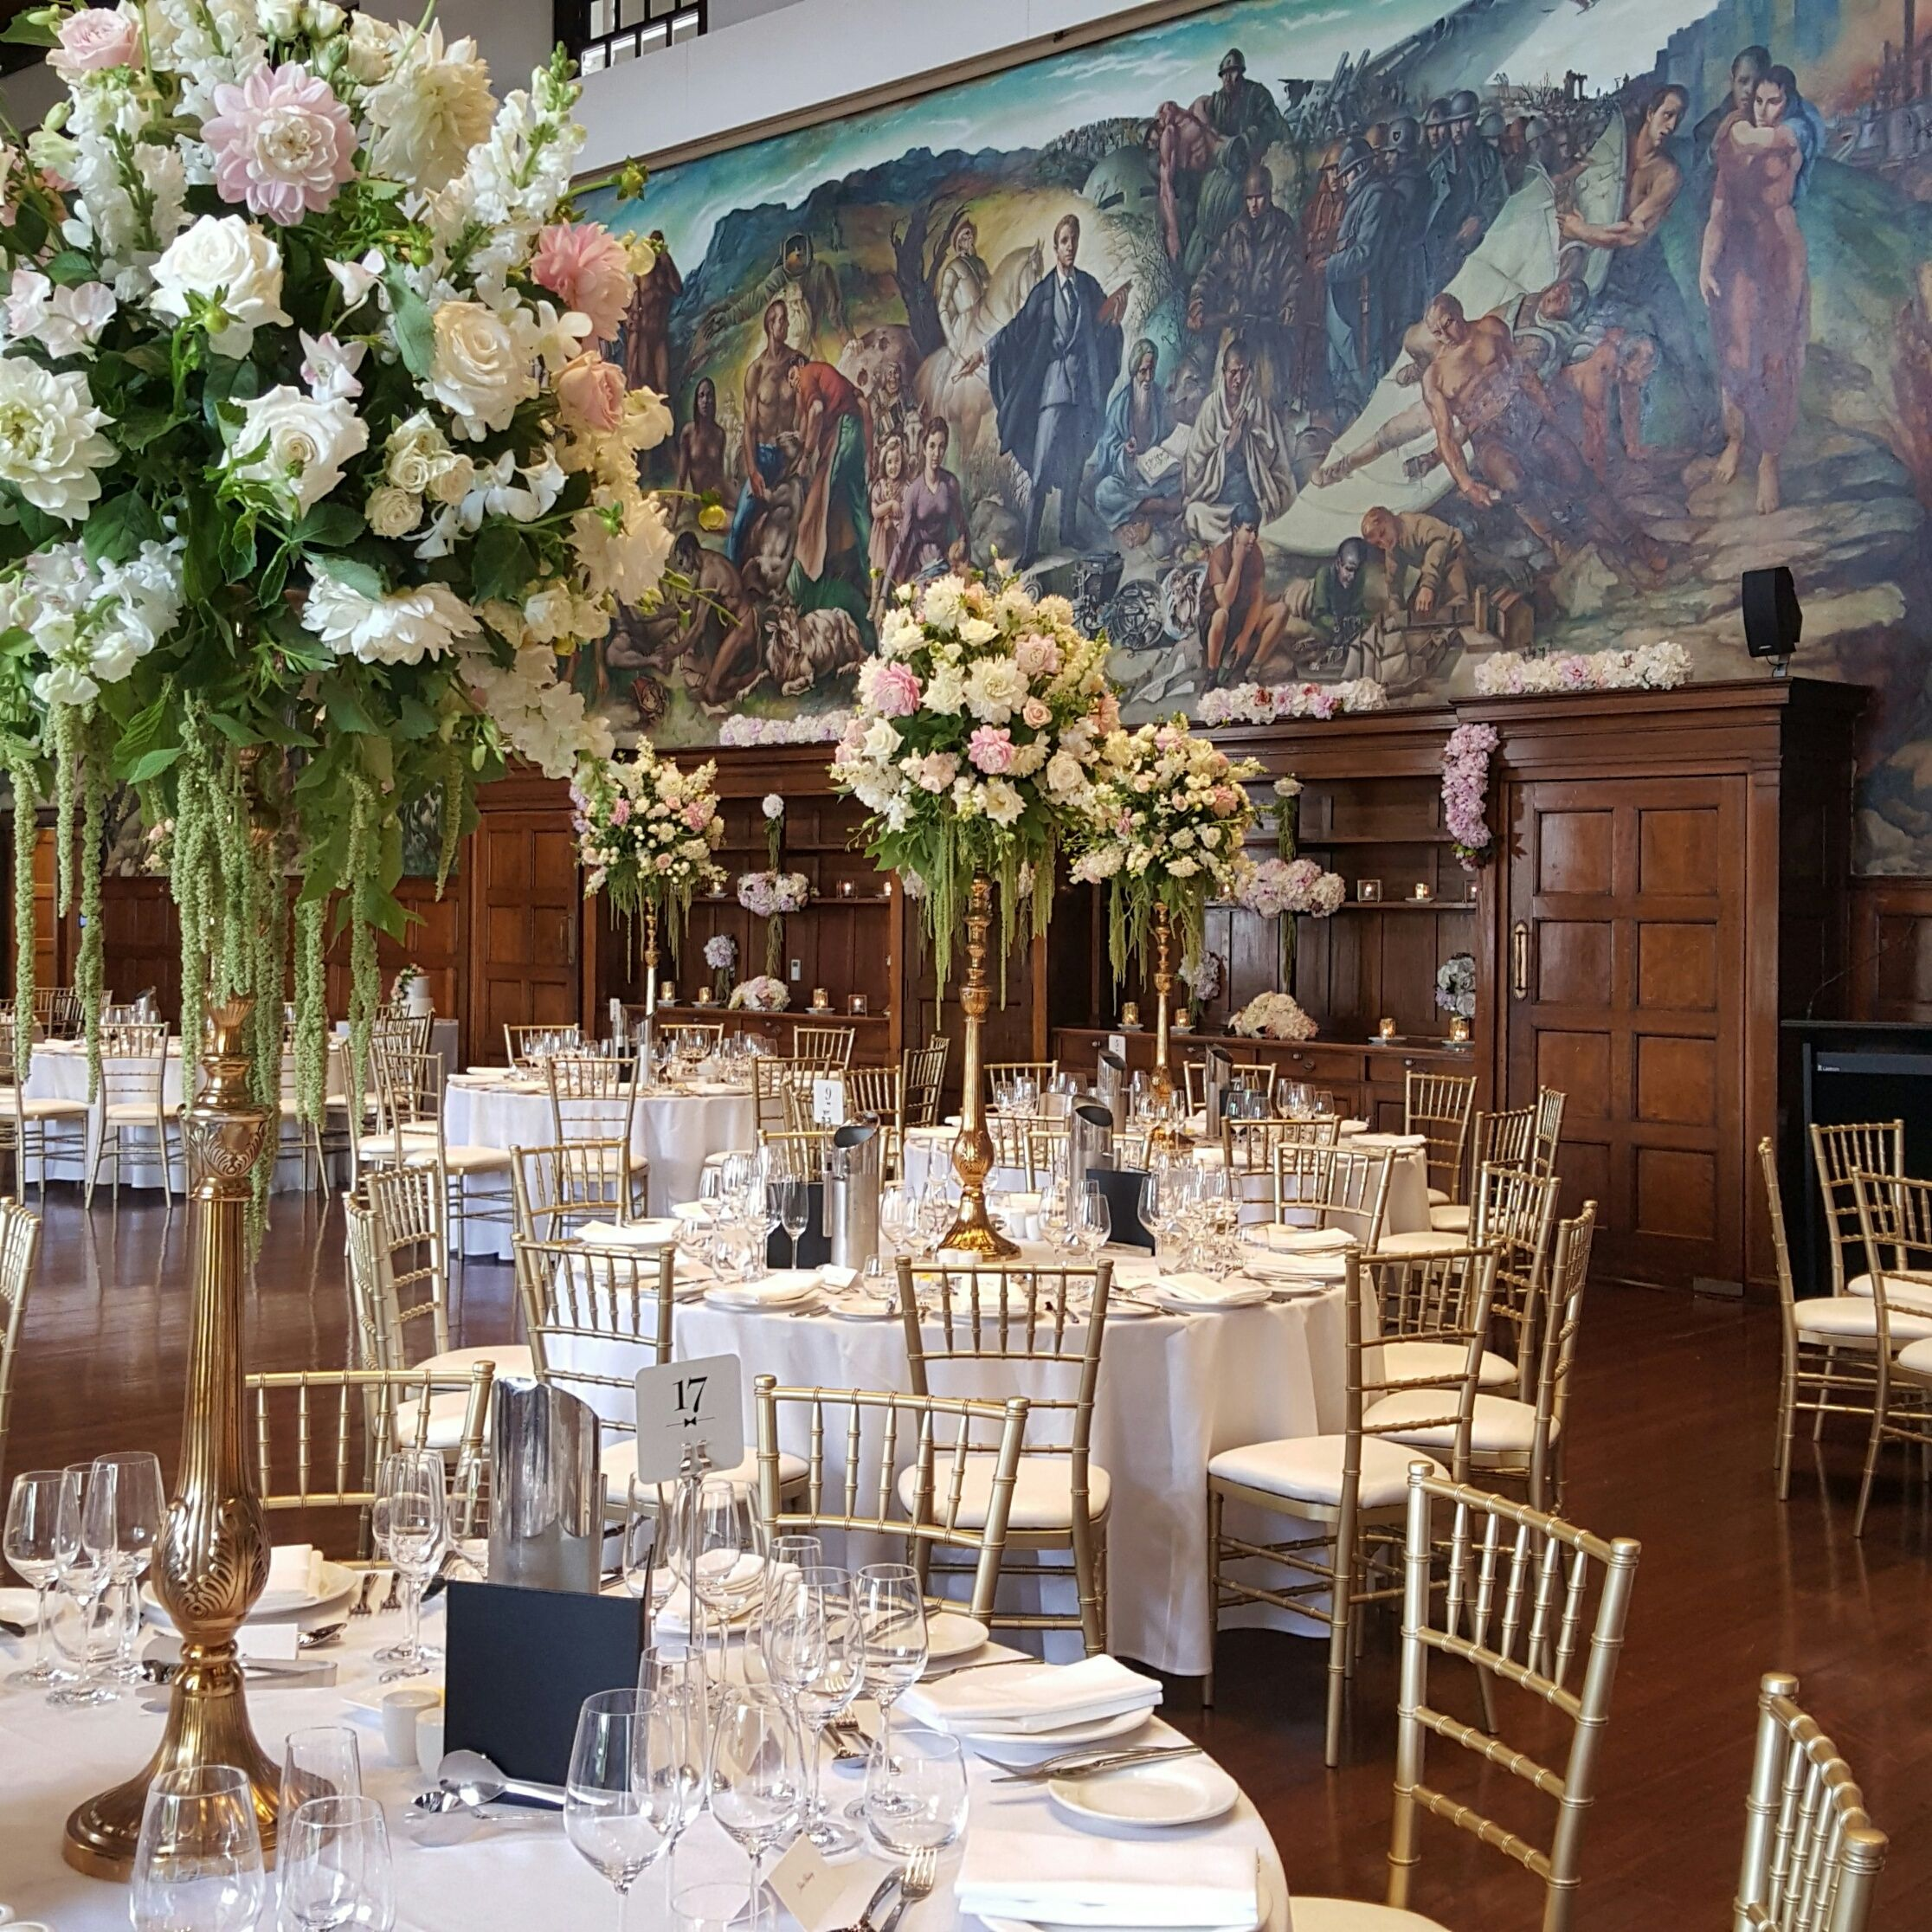 Wedding Ceremony And Reception Venues Sydney: Sydney Wedding Reception In The Refectory At The